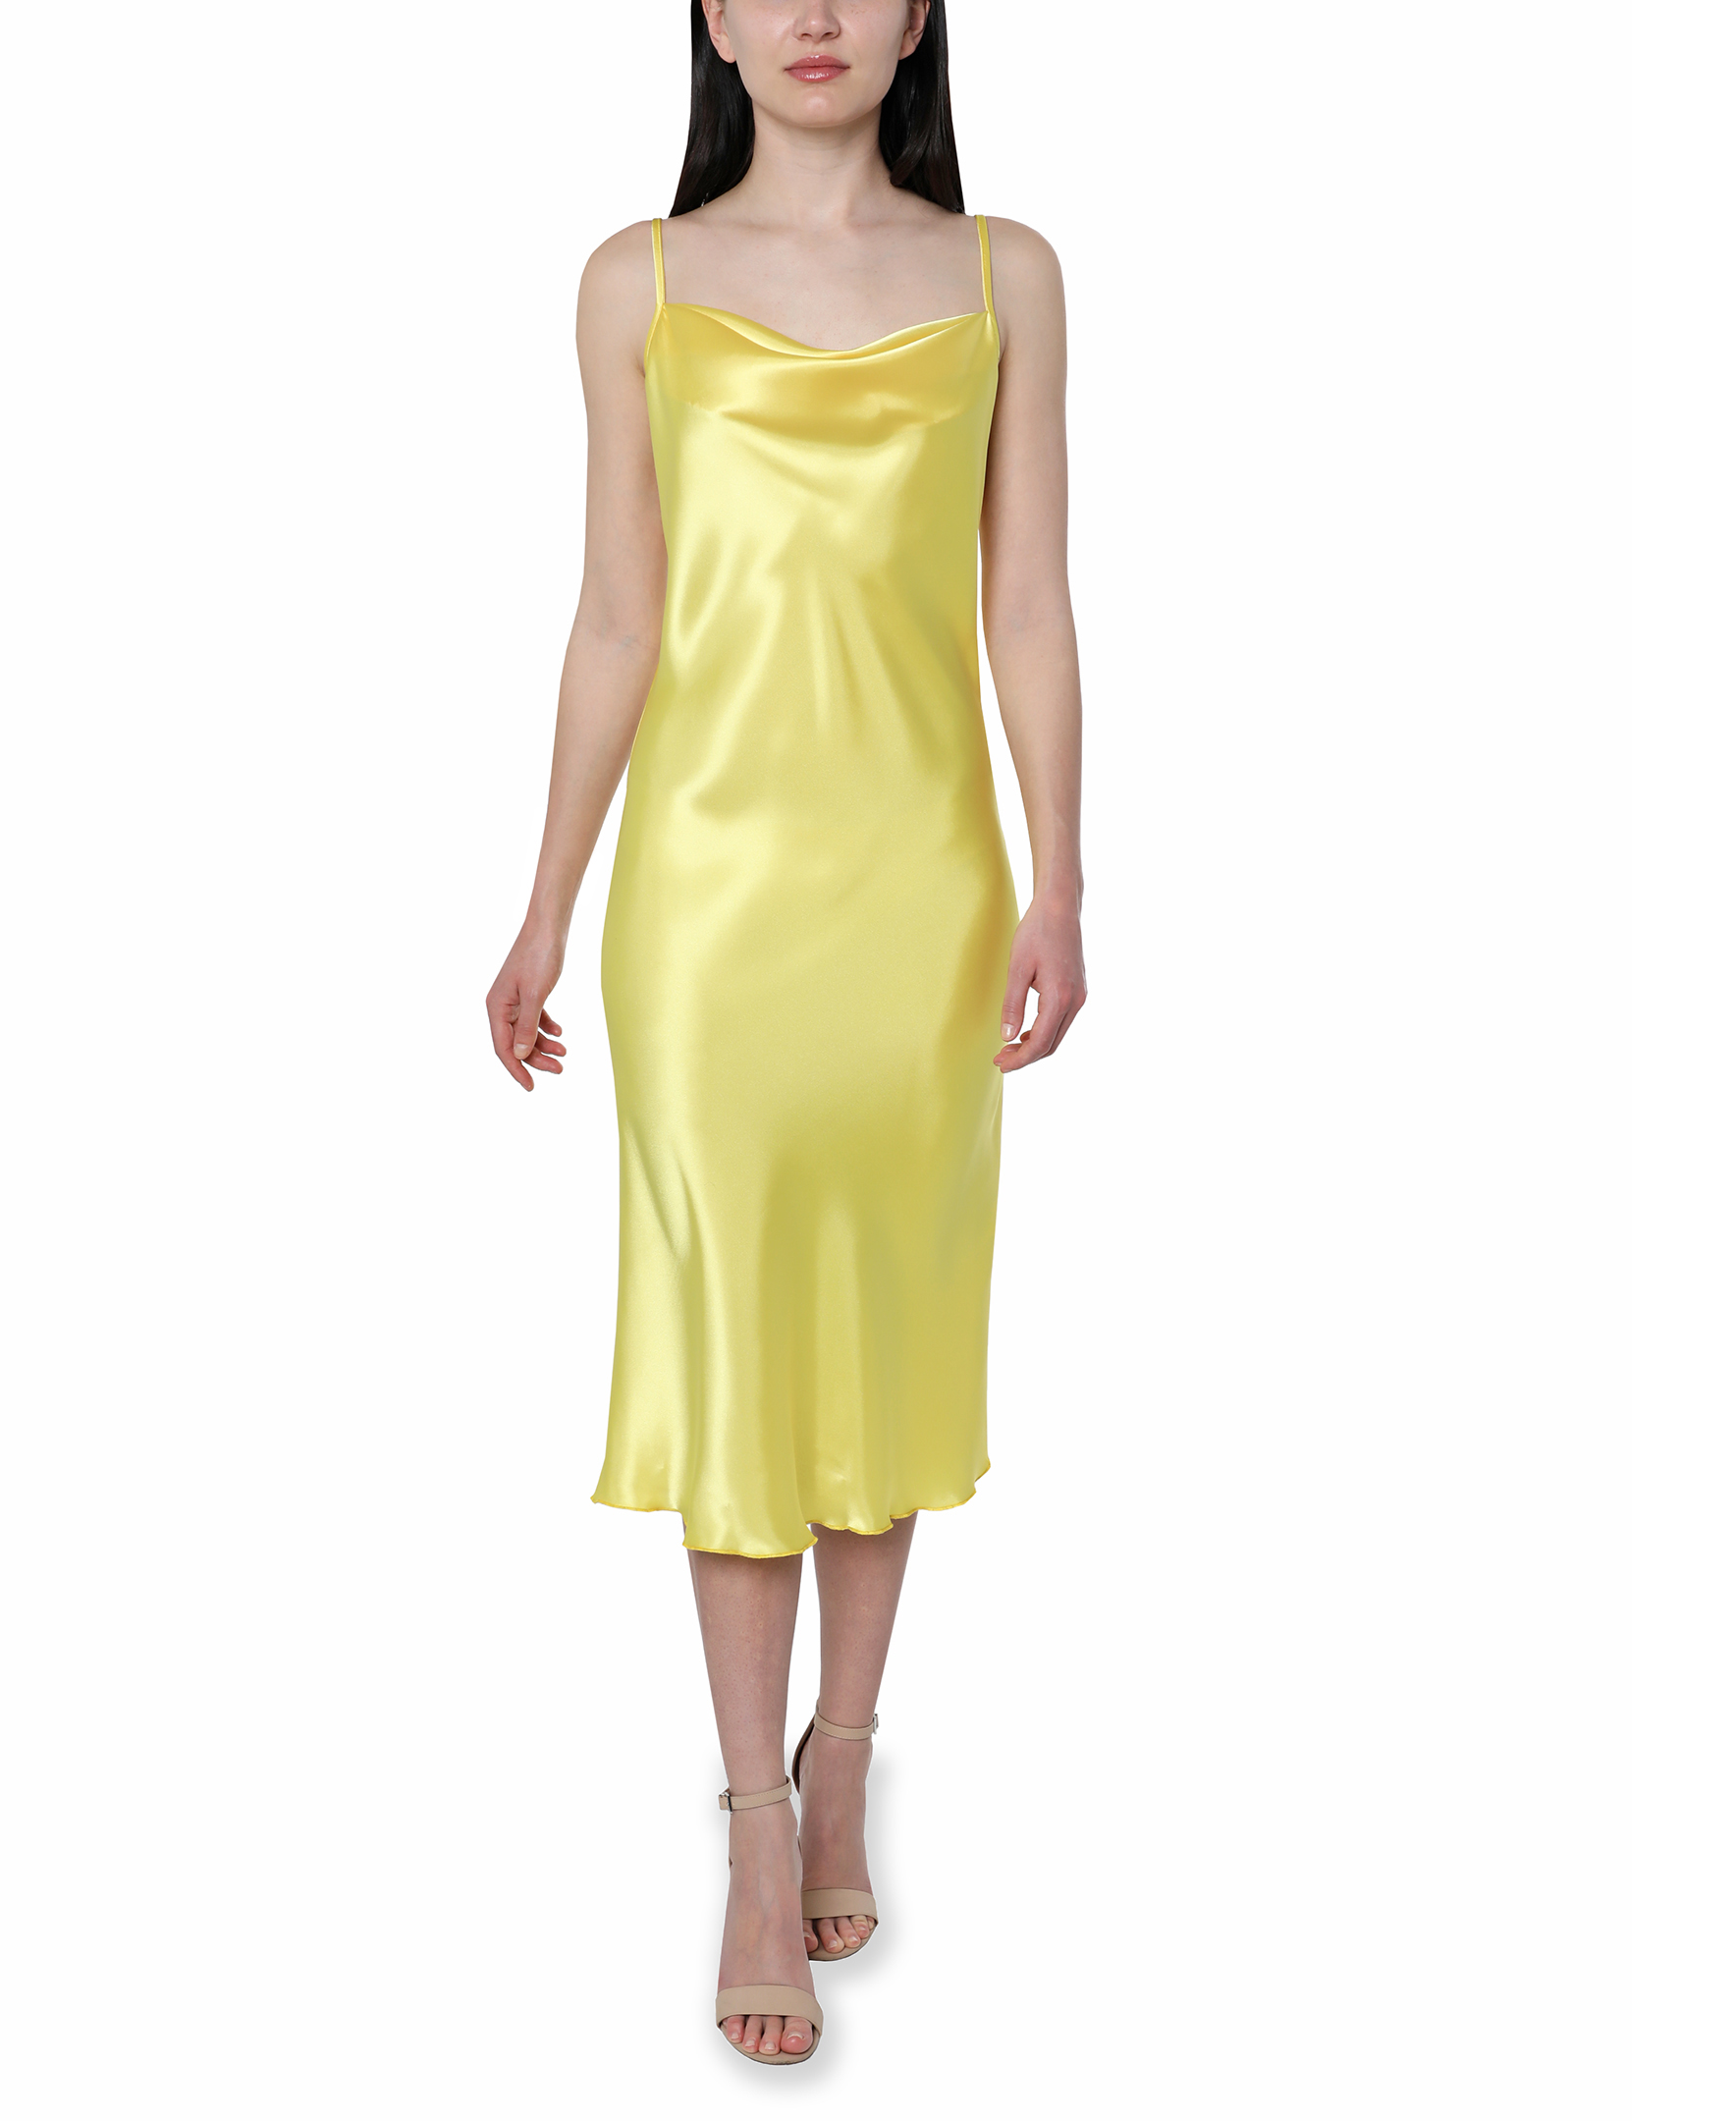 Bebe Satin Midi Dress -yellow - Front